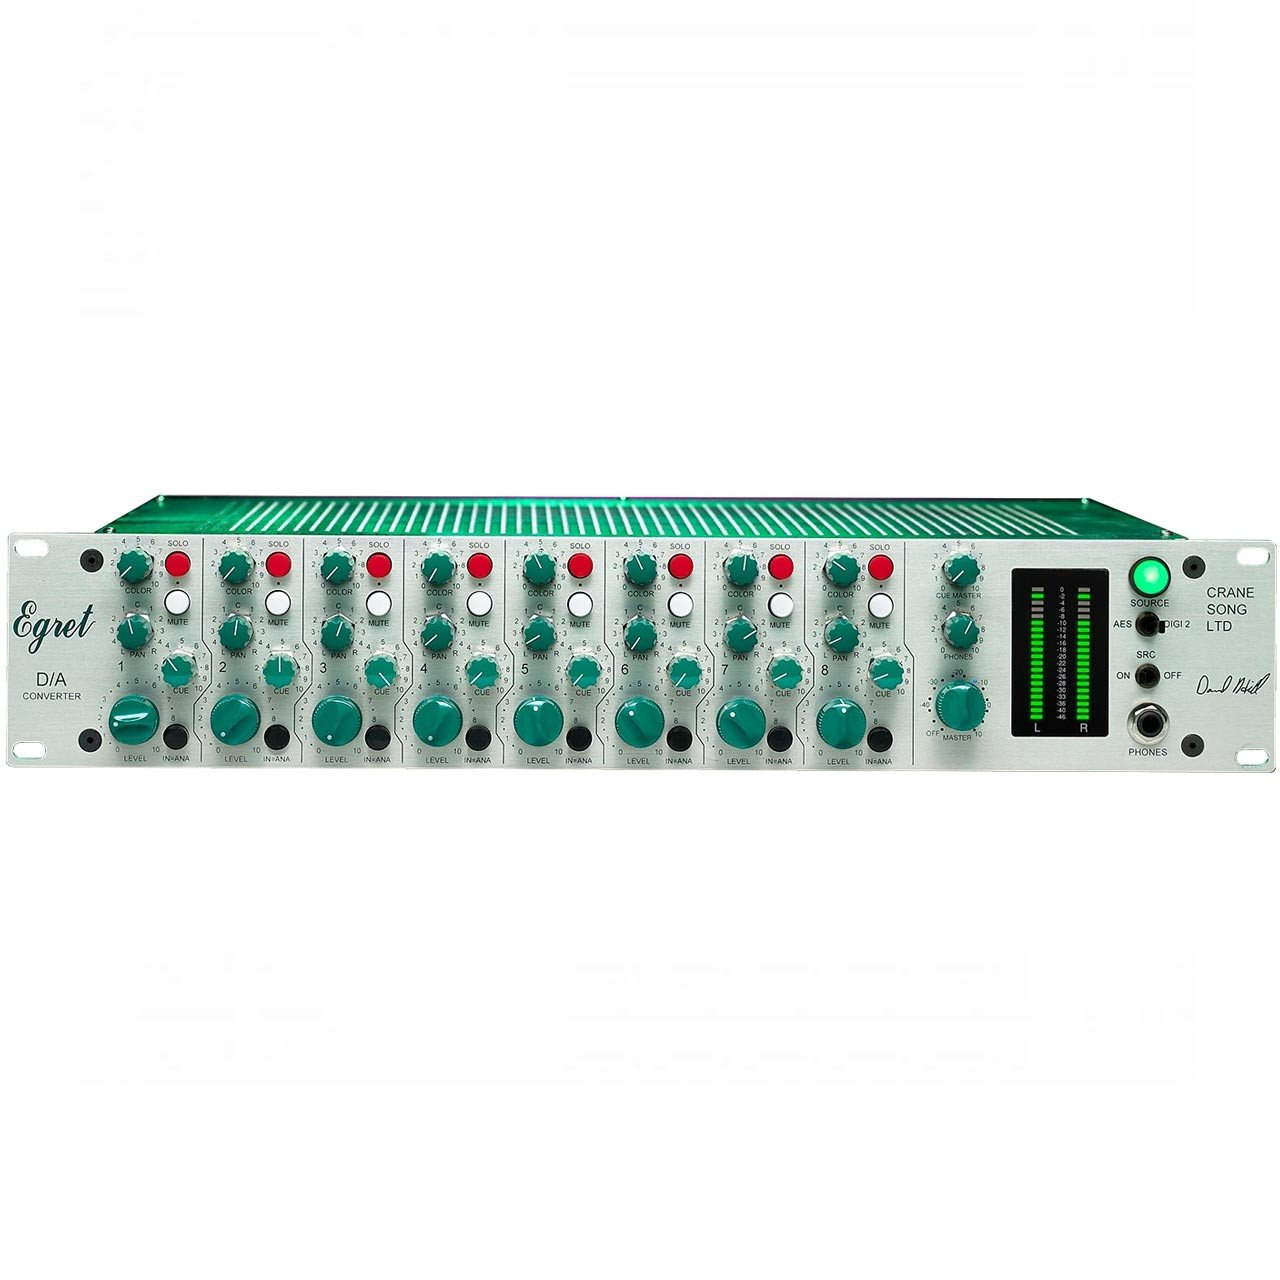 Crane Song Egret 8-Channel D/A Convertor and Summing Mixer